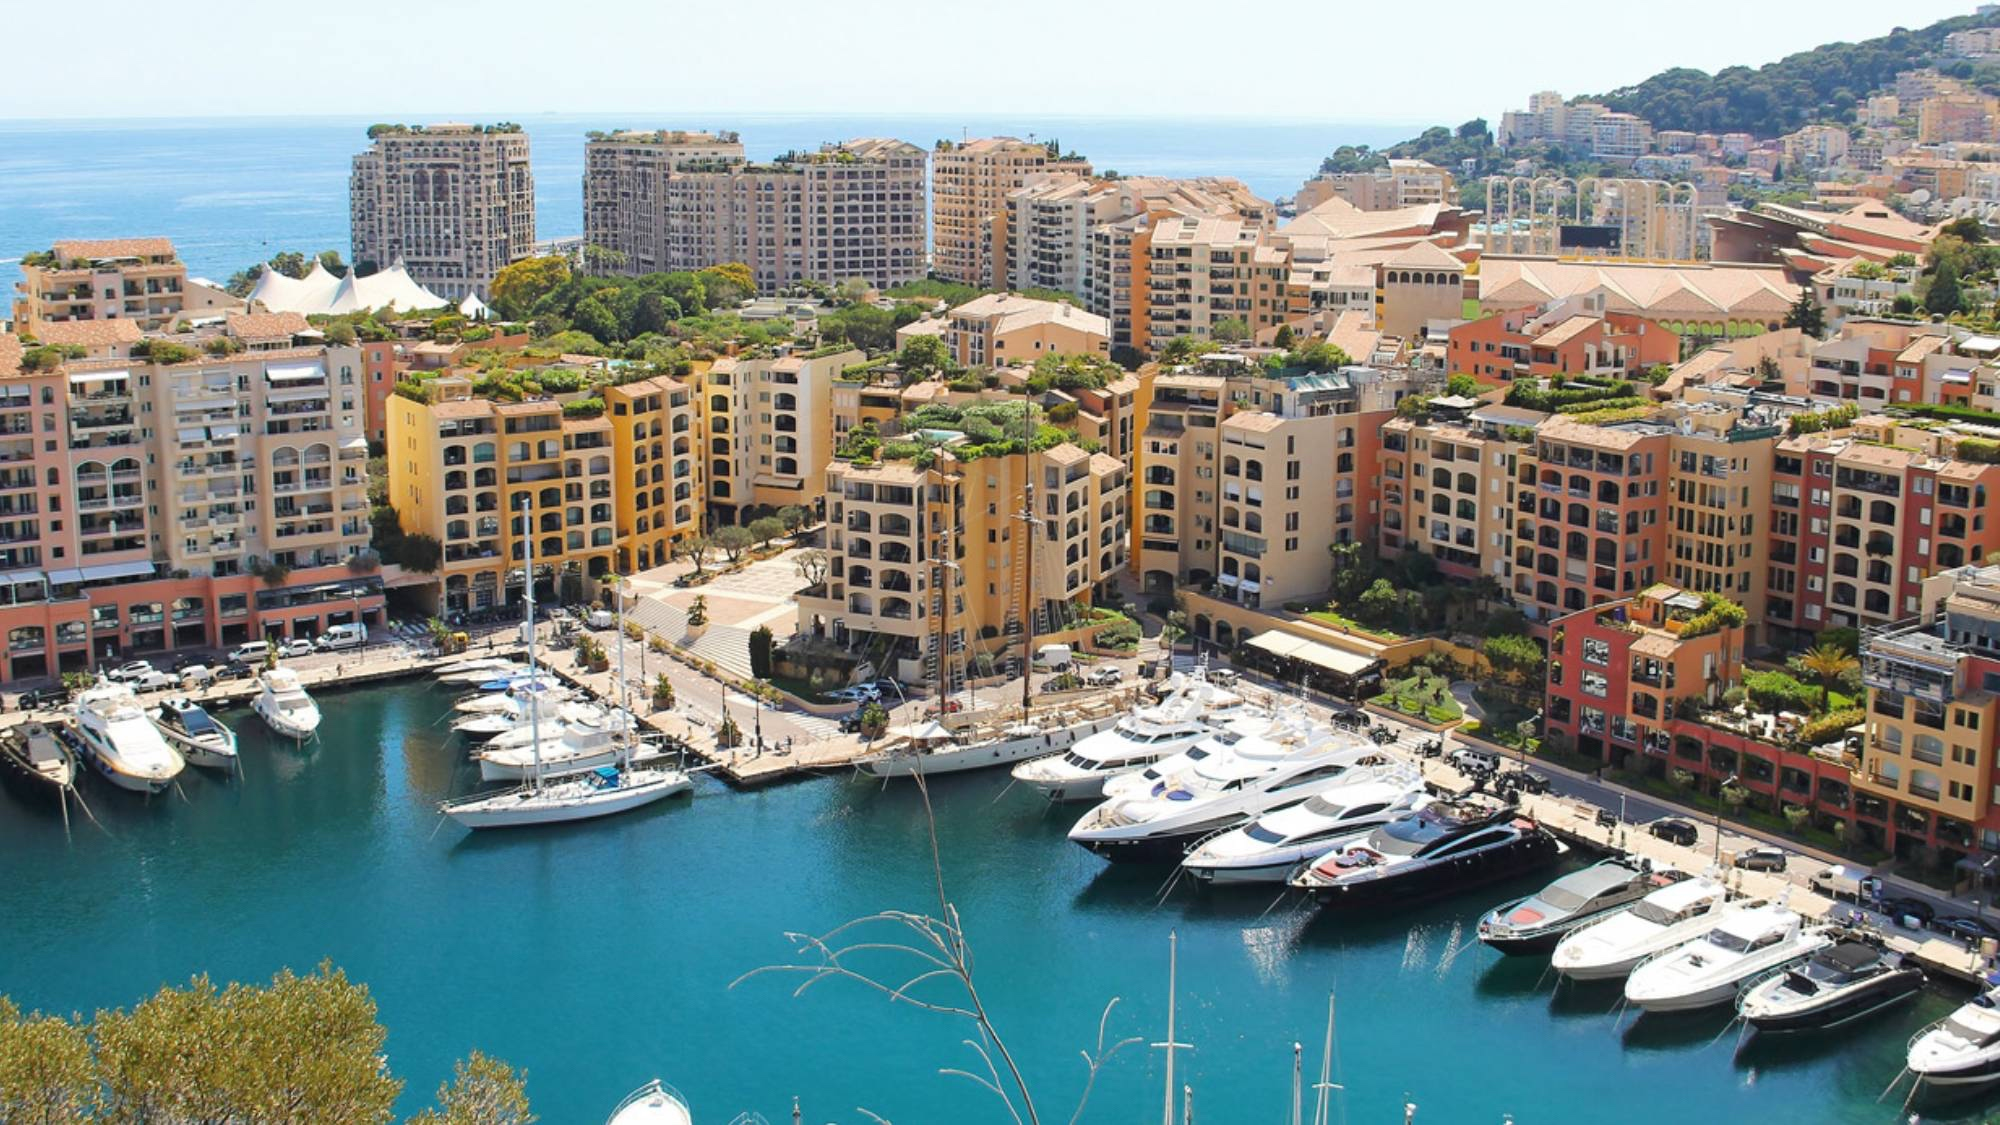 Panoramic view of a selection of monaco apartments for rent in La Condamine area of Monaco